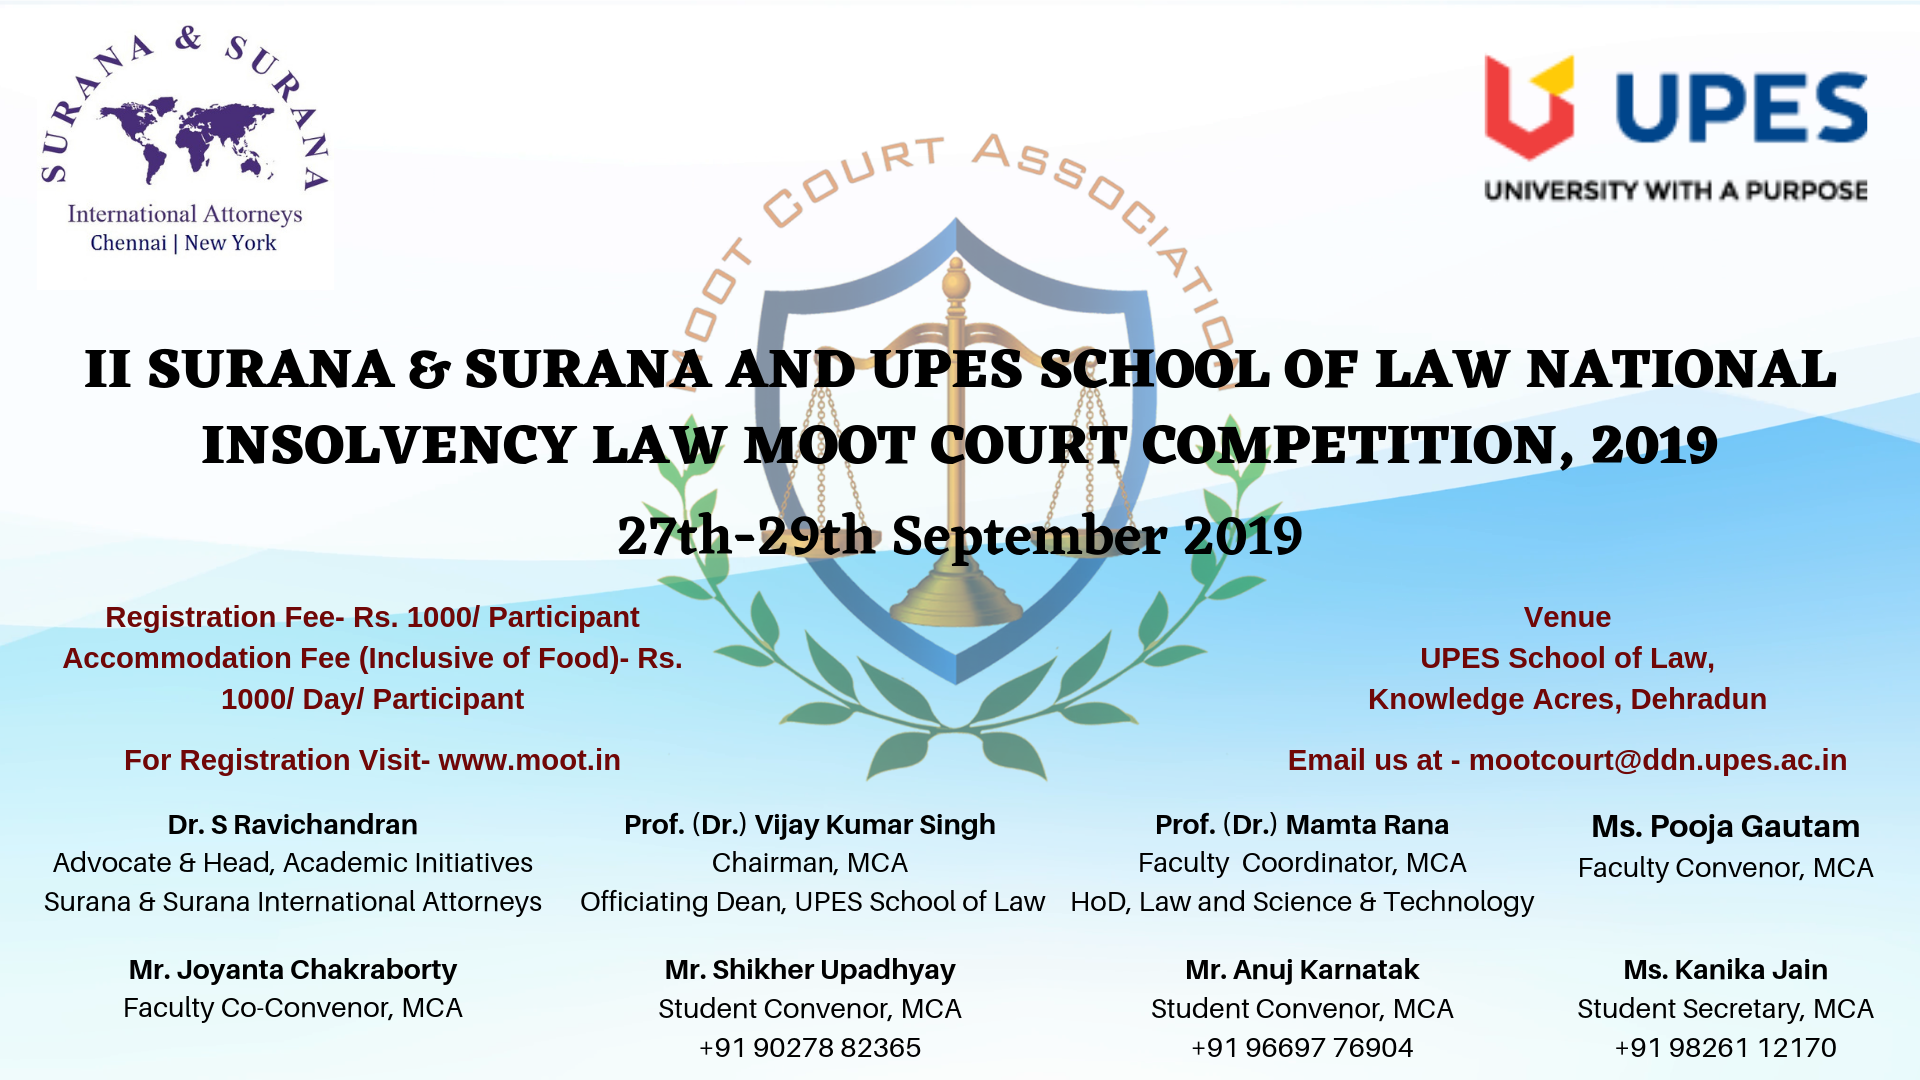 Surana & Surana and UPES School of Law National Insolvency Law Moot